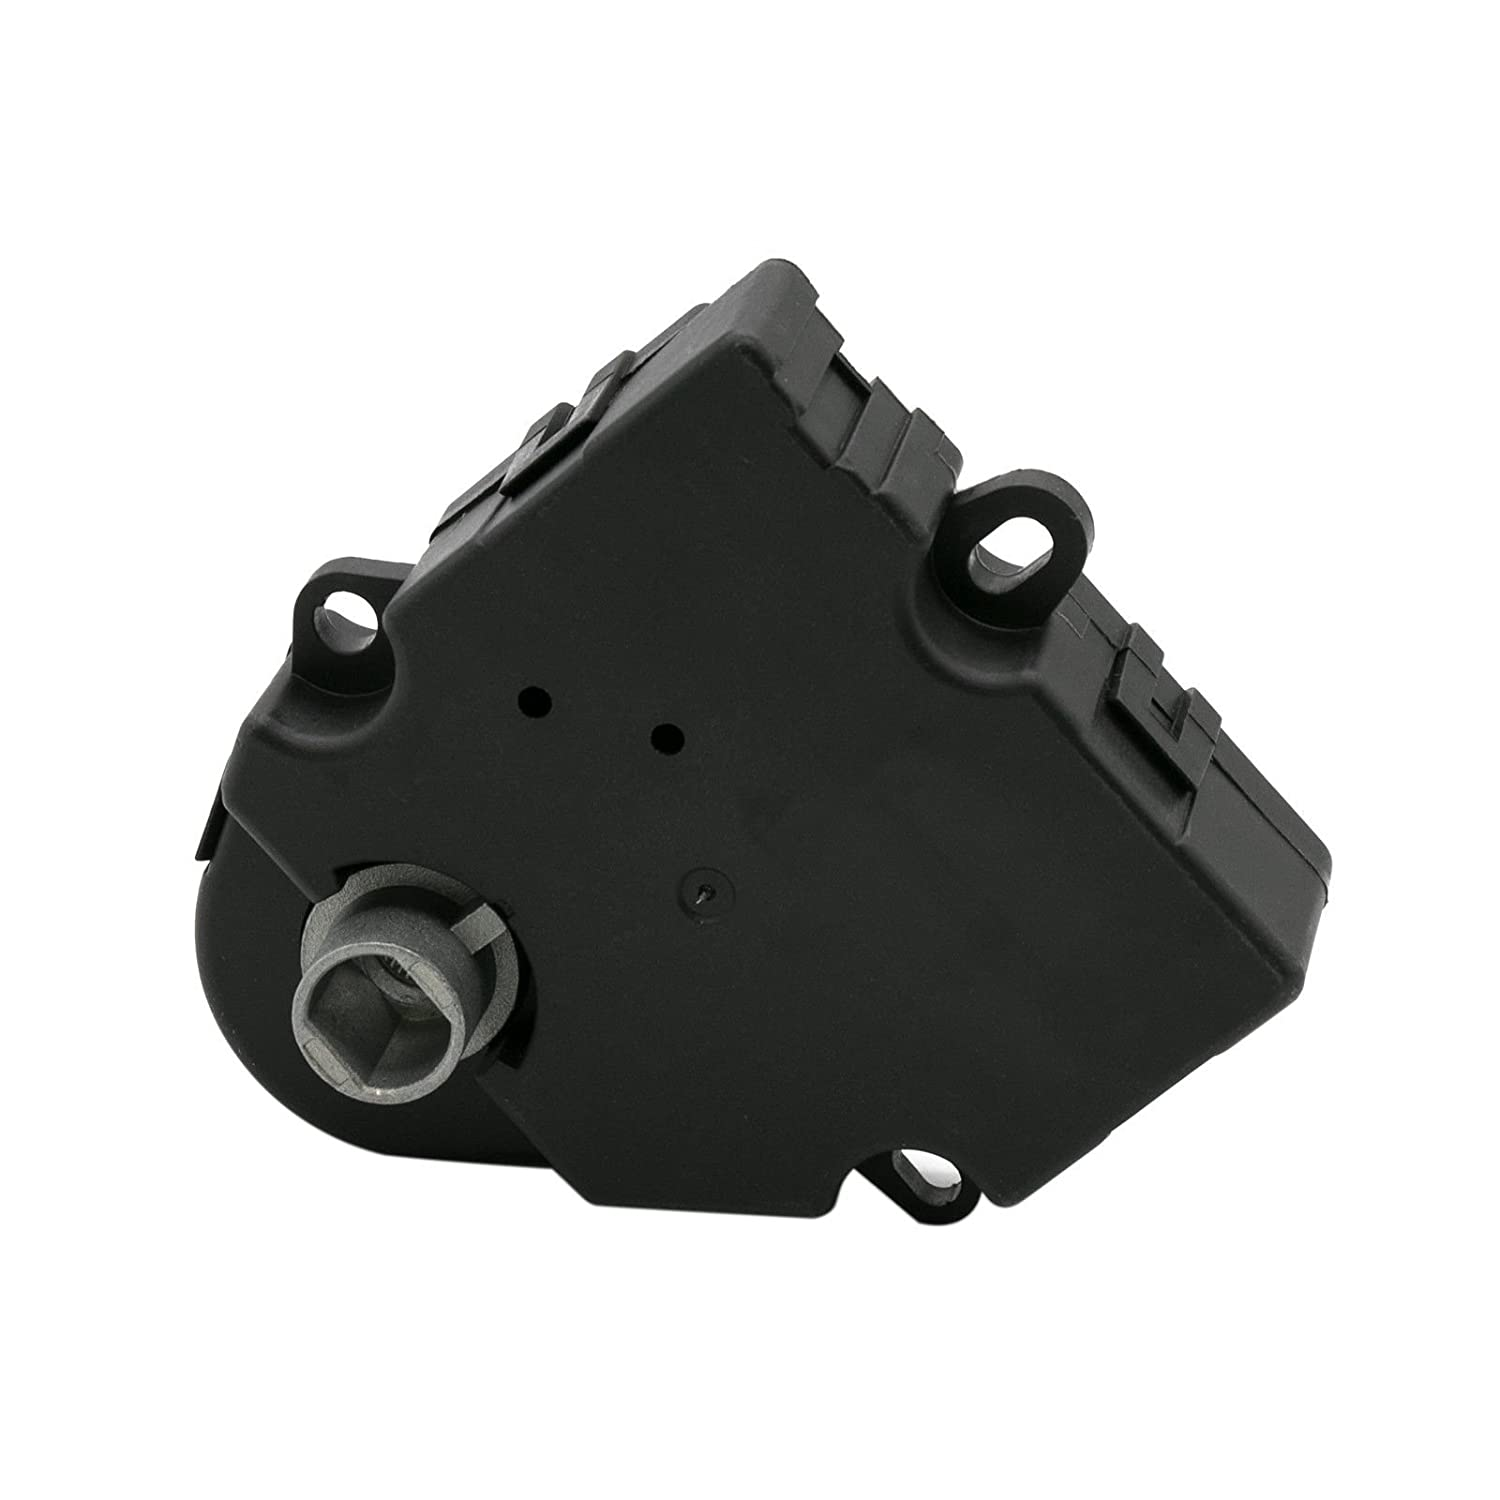 Buick Enclave 2008-2013 2013 HVAC Blend Door Actuator Replace# 15-73989 604-140 20826182 1573989 for Chevy Traverse 2009 2010 GMC Acadia 2007-2013 2012 2011